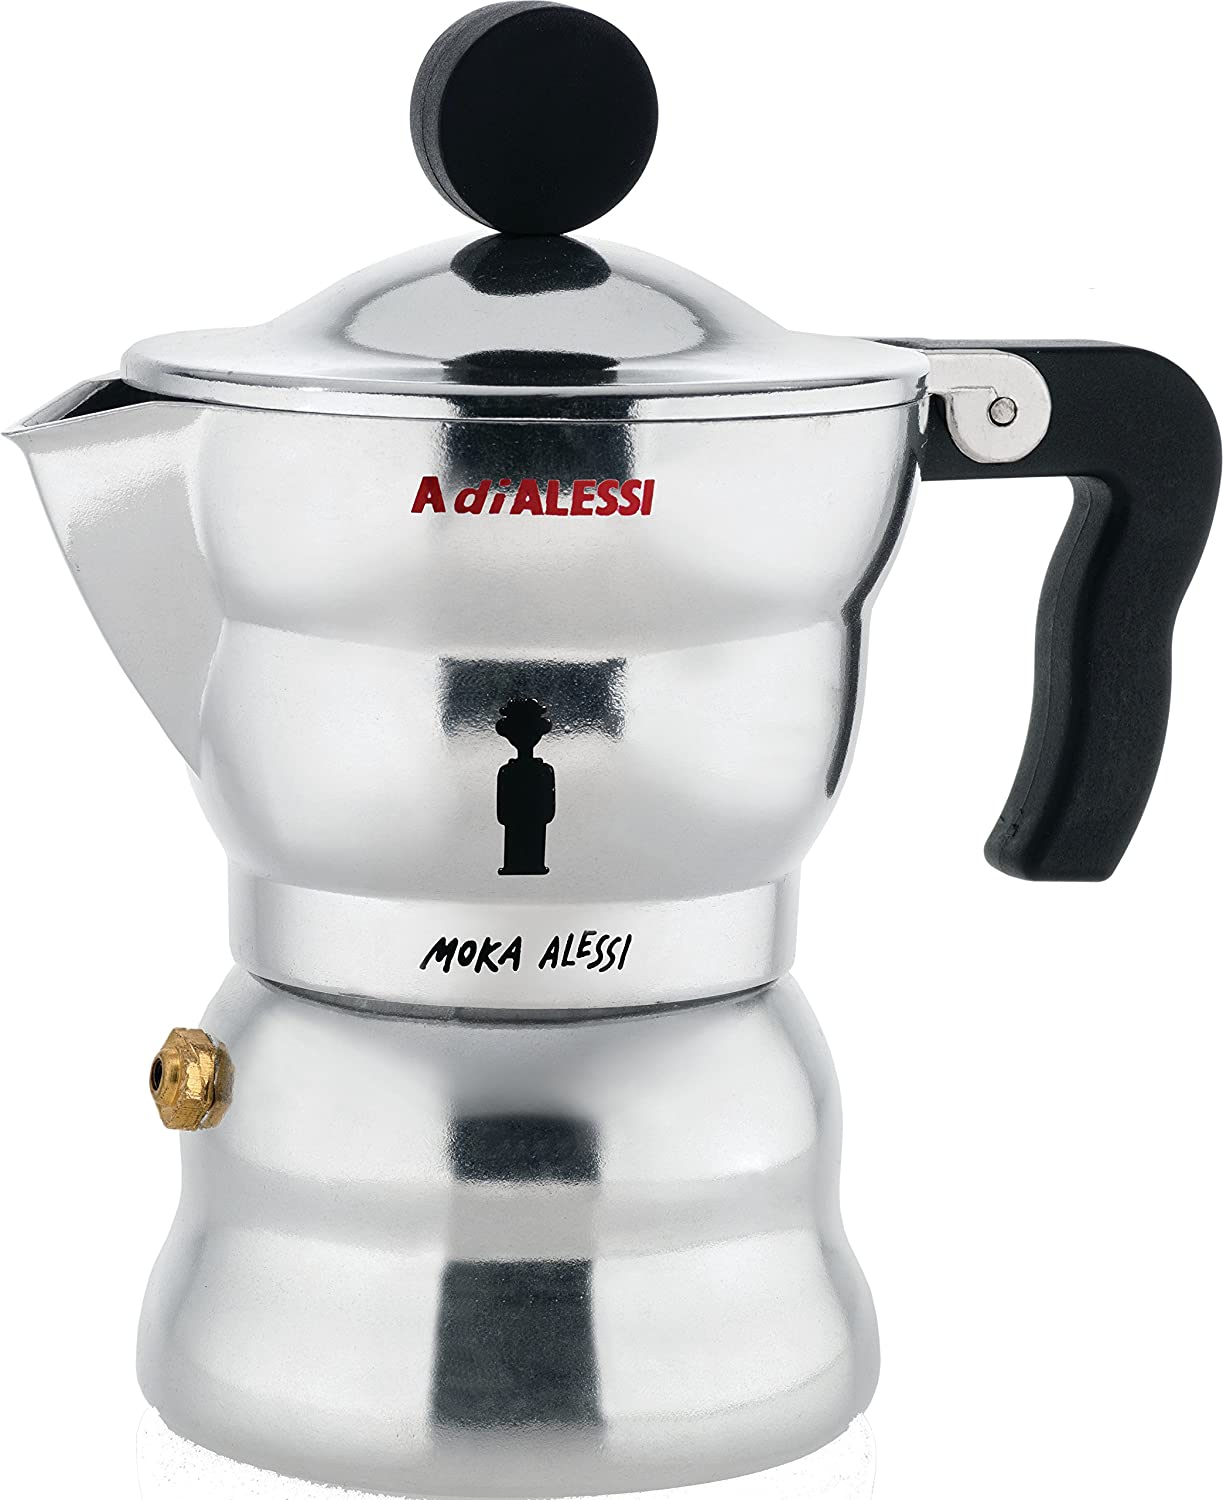 Alessi AAM33/1Moka Stove Top Espresso Coffee Maker in Aluminium Casting Handle And Knob in Thermoplastic Resin, Black